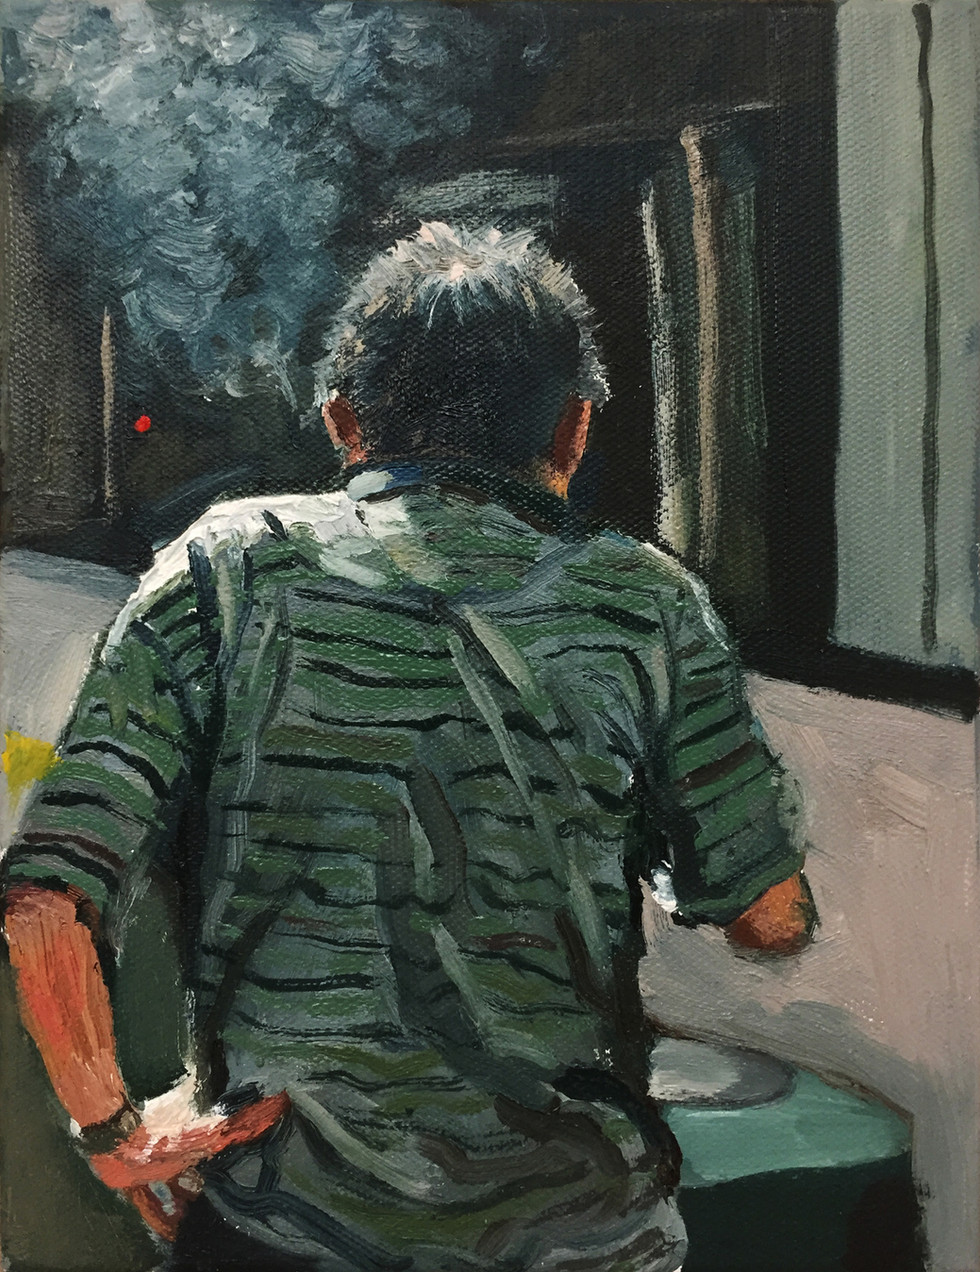 Green Striped Shirt, 2017, Oil on canvas, 15 x 20 cm